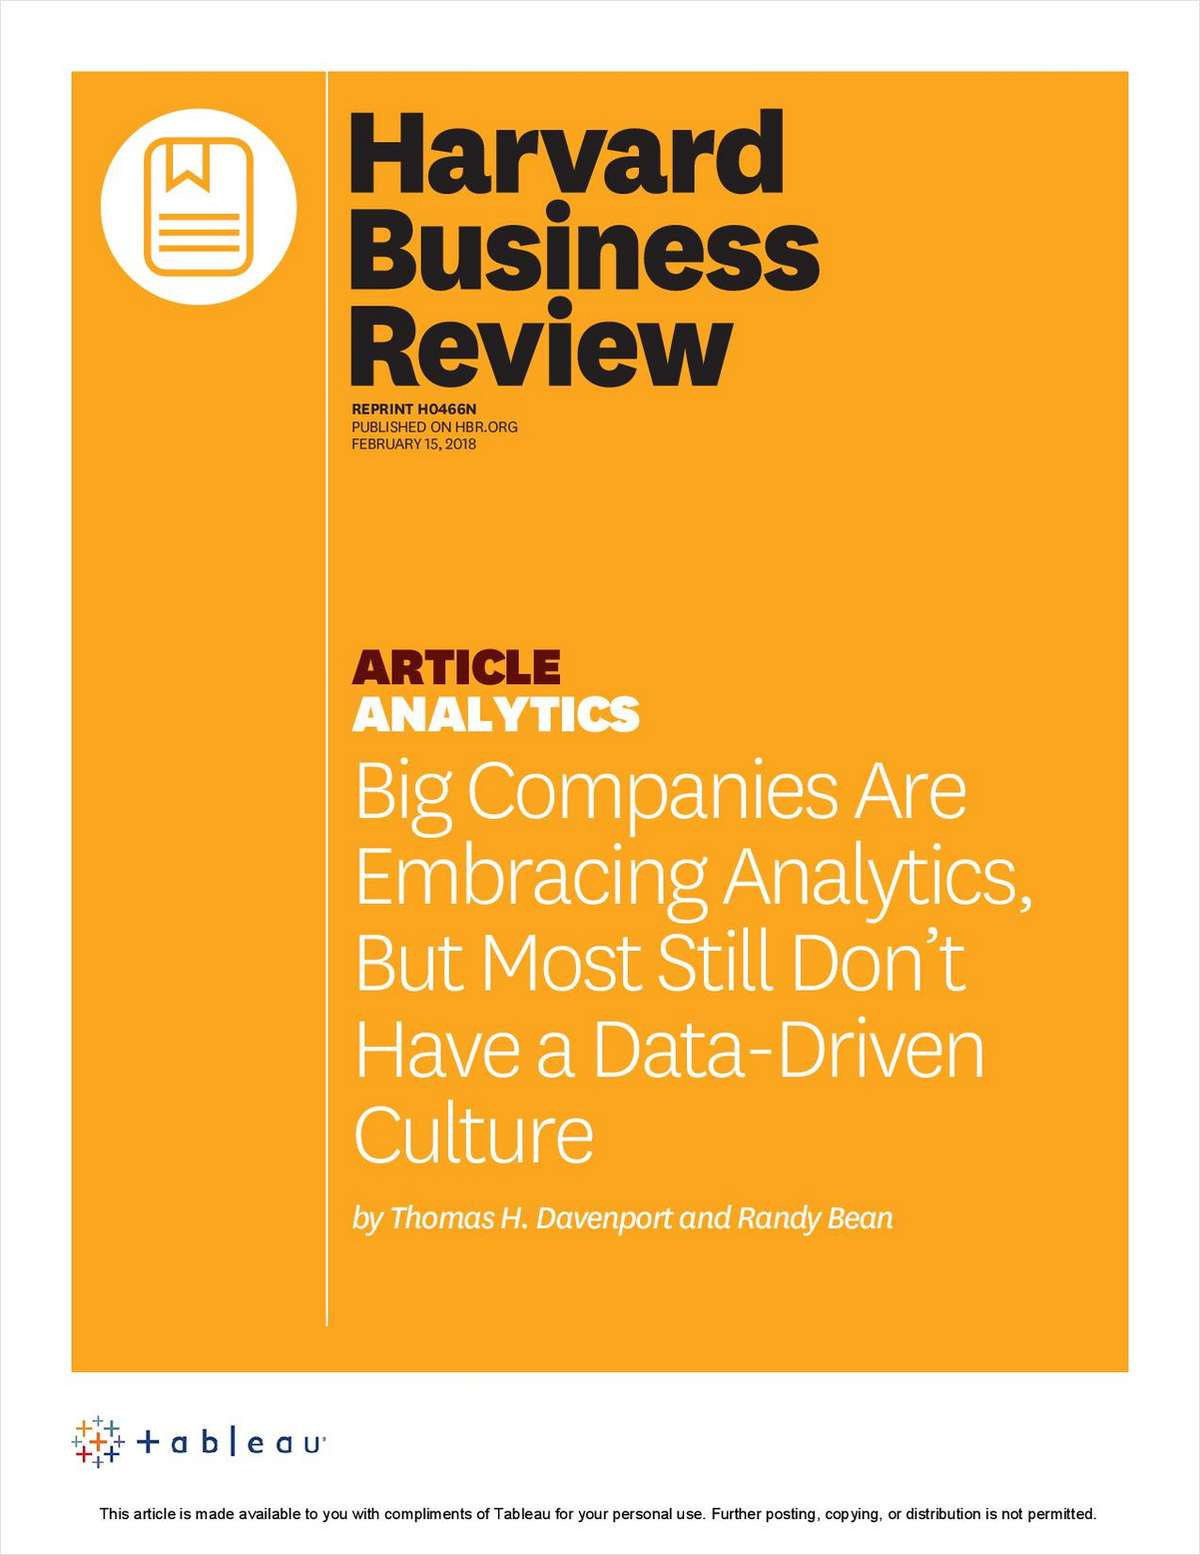 Big Companies Are Embracing Analytics, But Most Still Don't Have a Data-Driven Culture